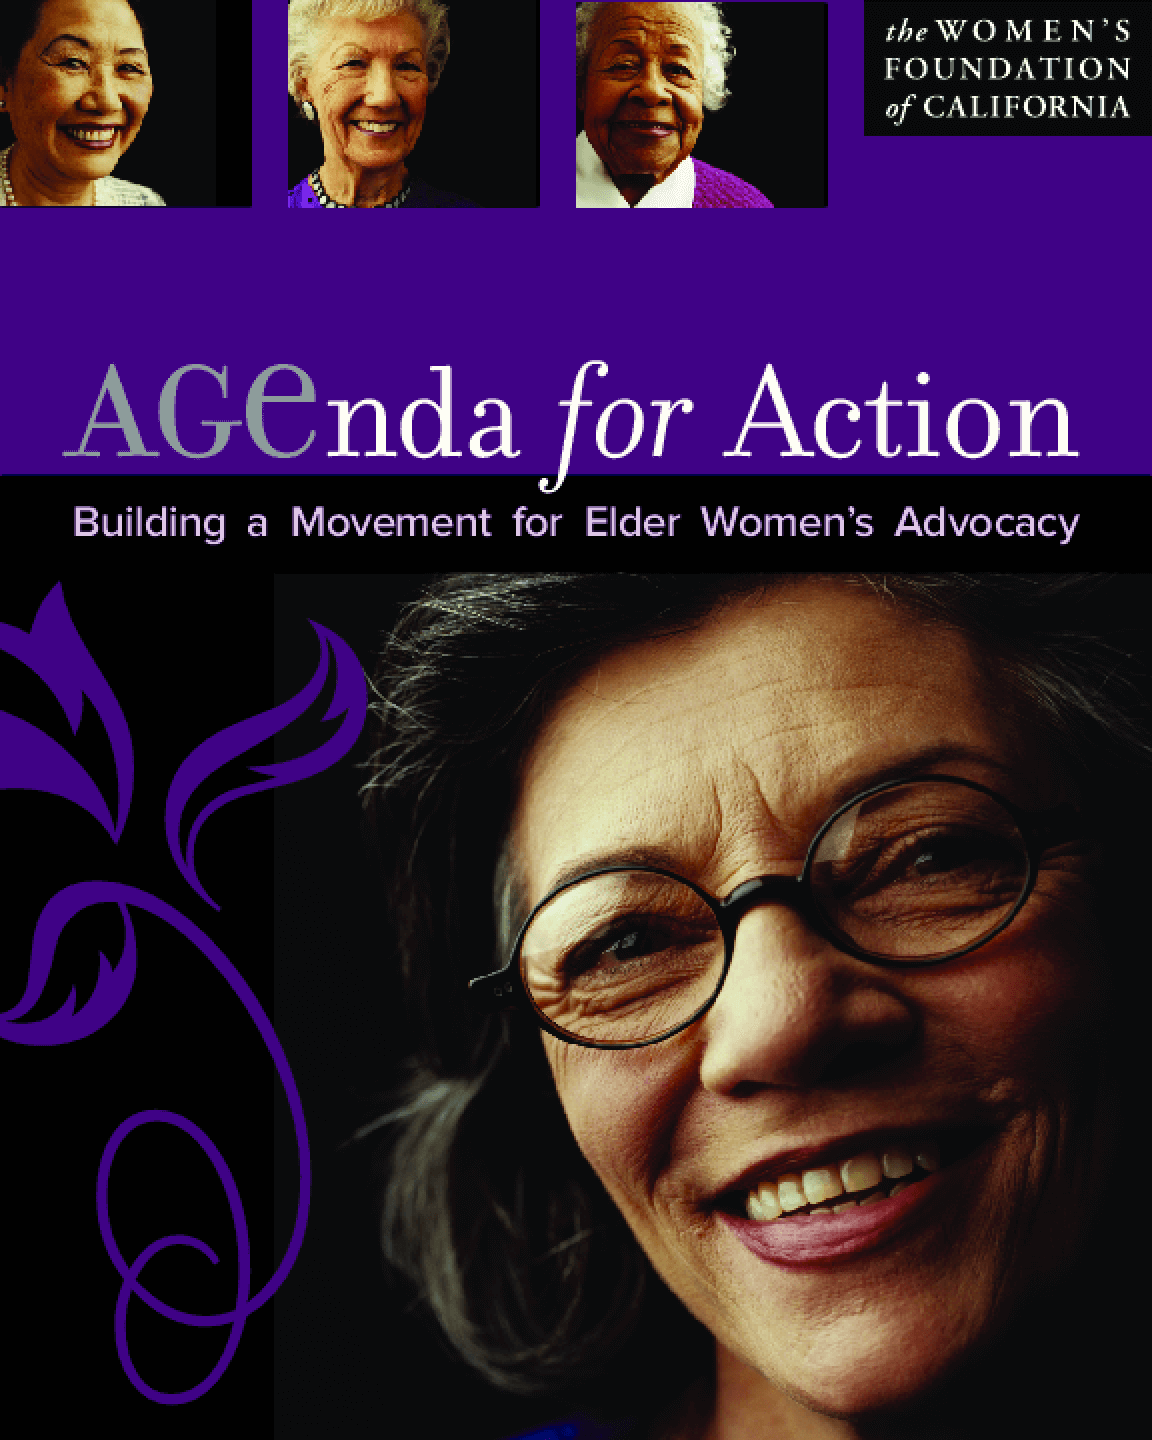 AGEnda for Action: Building a Movement for Elder Women's Advocacy